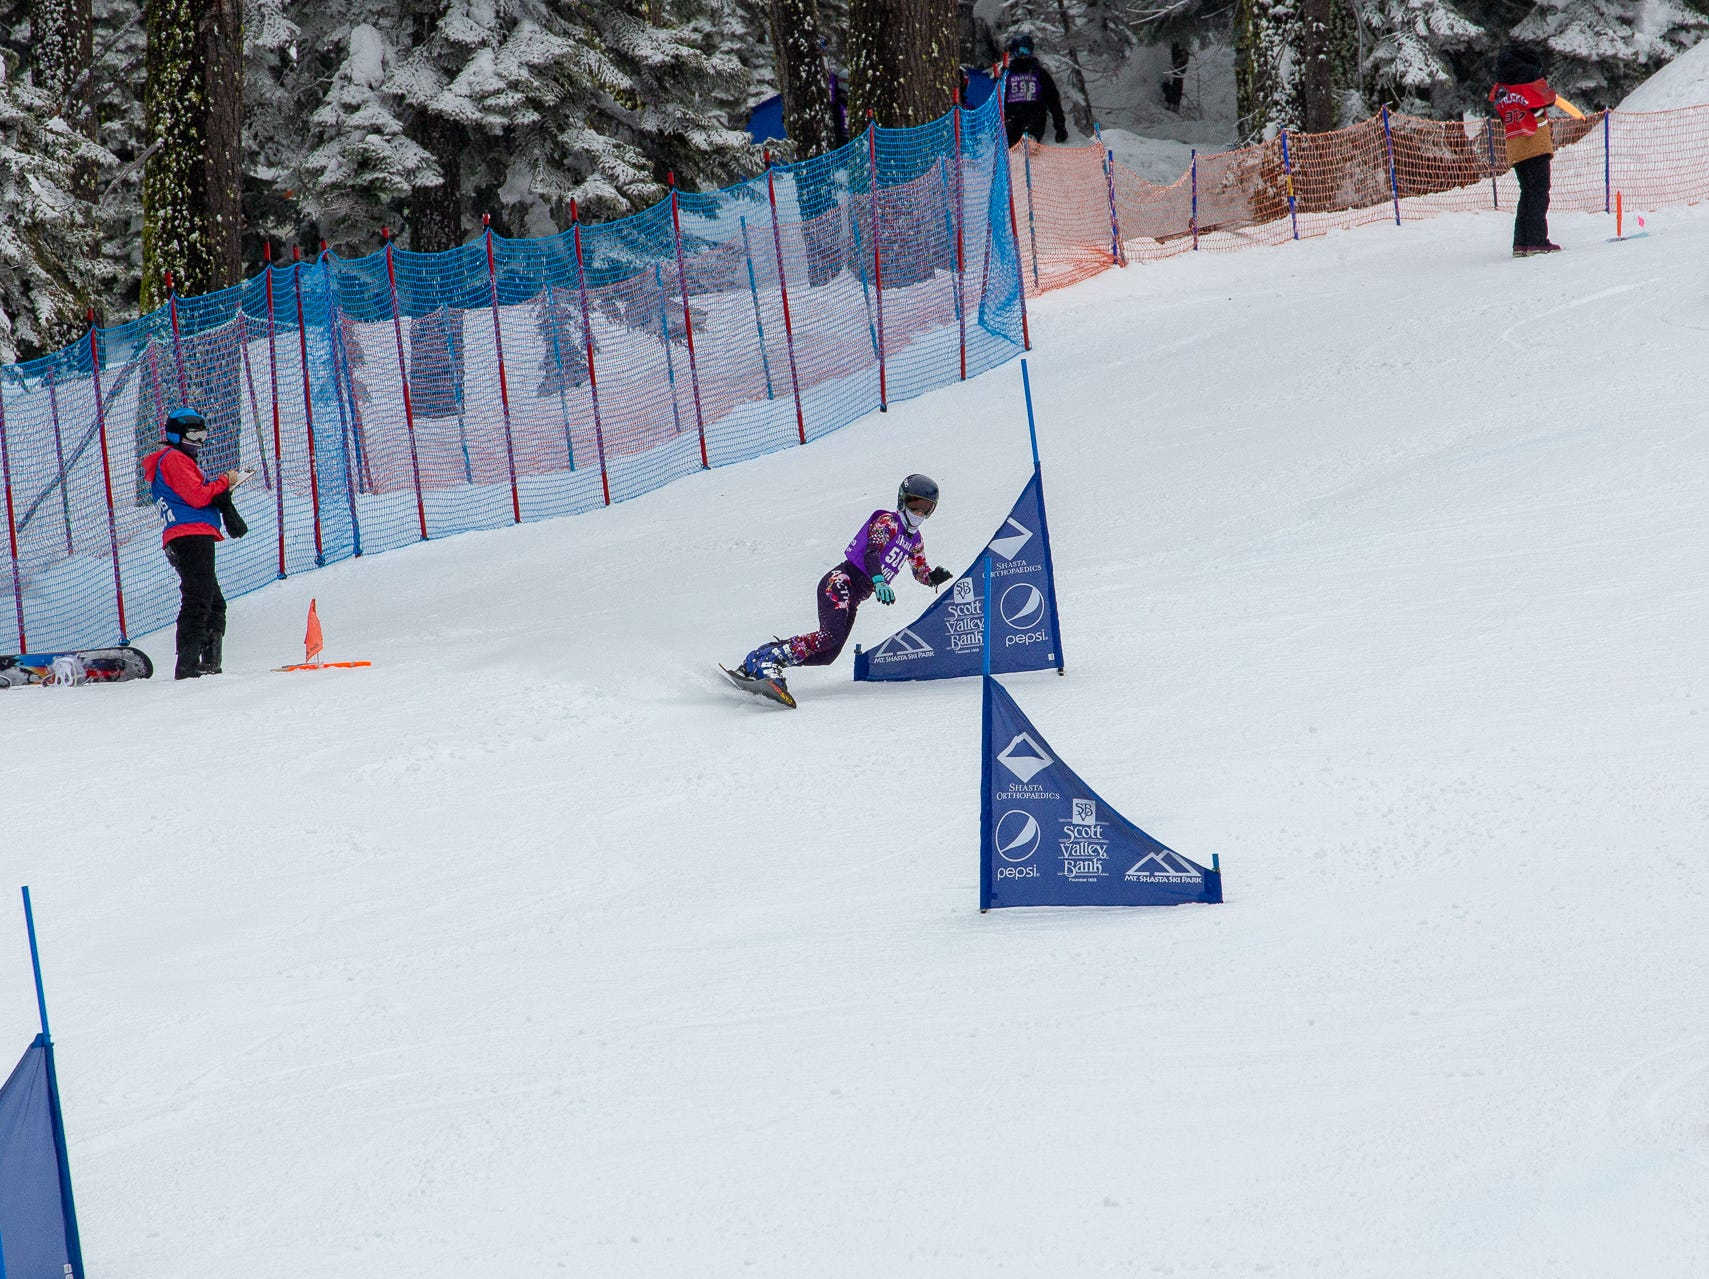 Sage Will of Shasta competes in the girls slalom at the 2019 snowboard state championships held March 4-5 at Mt. Shasta Ski Park.